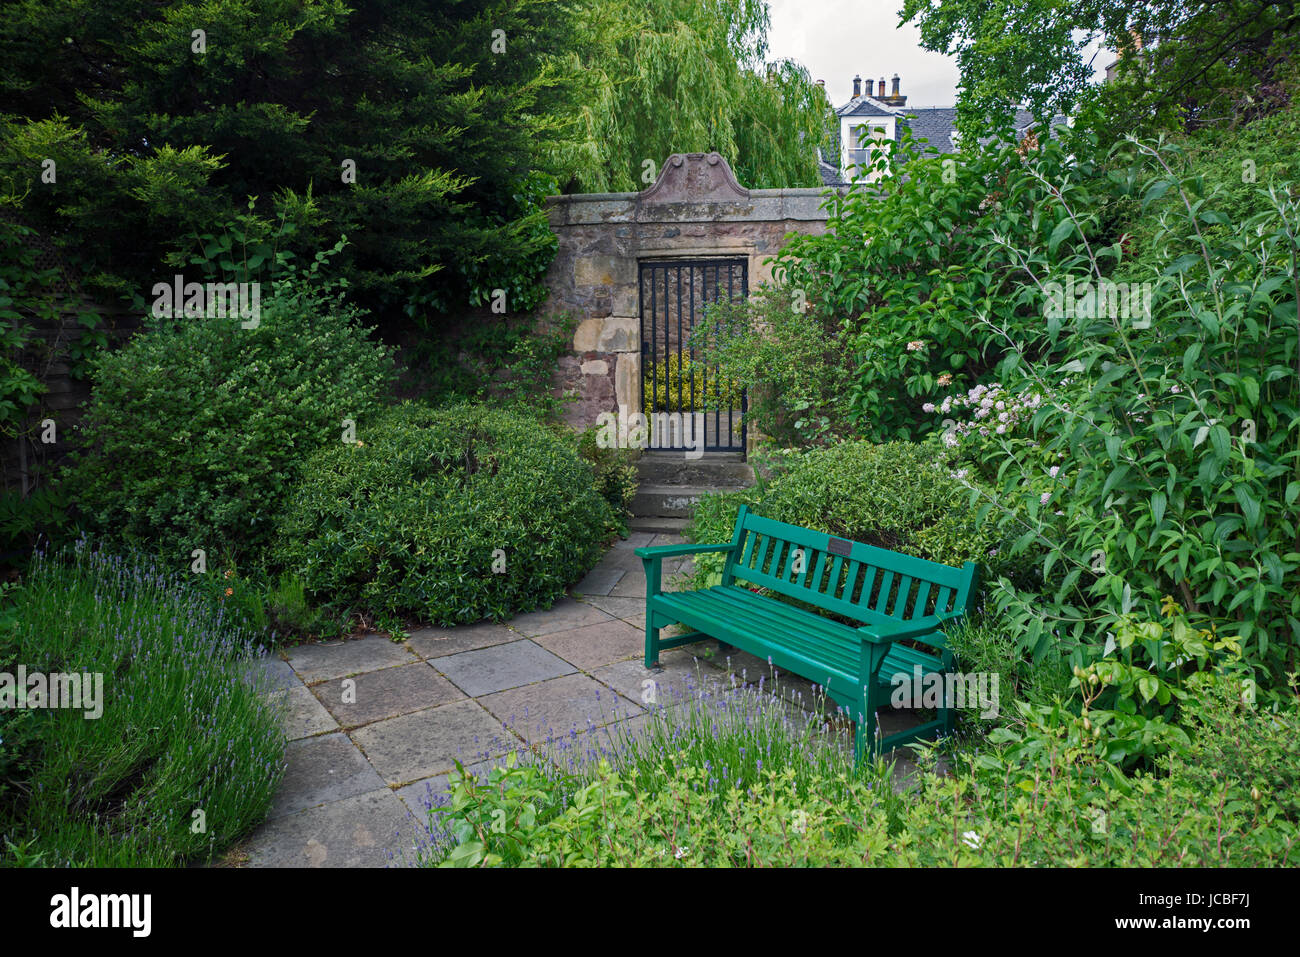 On Chamberlain Road in Edinburgh is a small garden with a gated entrance to the mausoleum of John Livingston, who Stock Photo